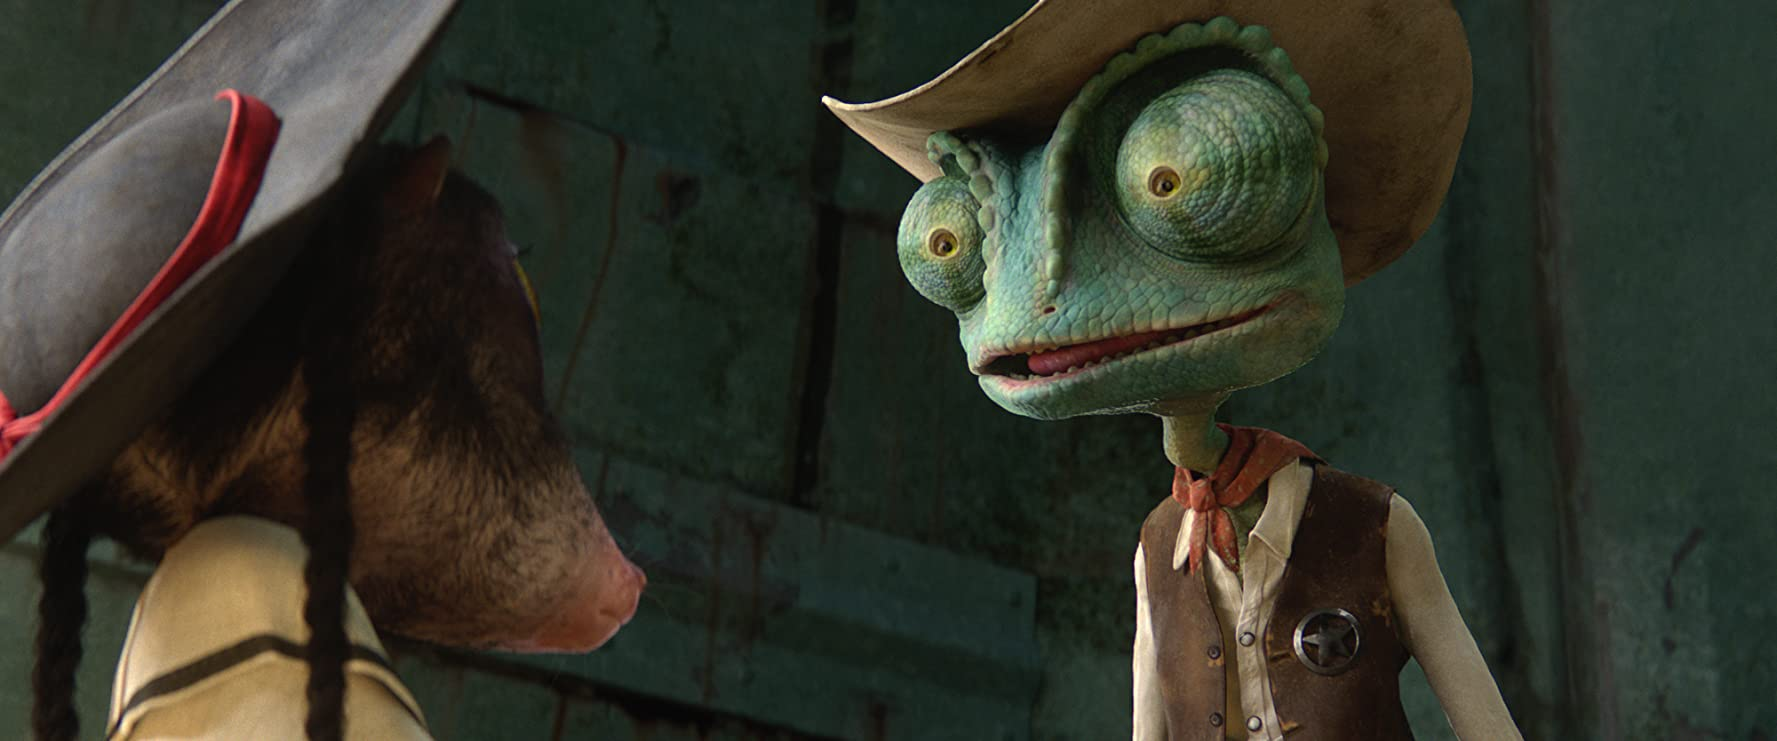 Johnny Depp and Abigail Breslin in Rango (2011)